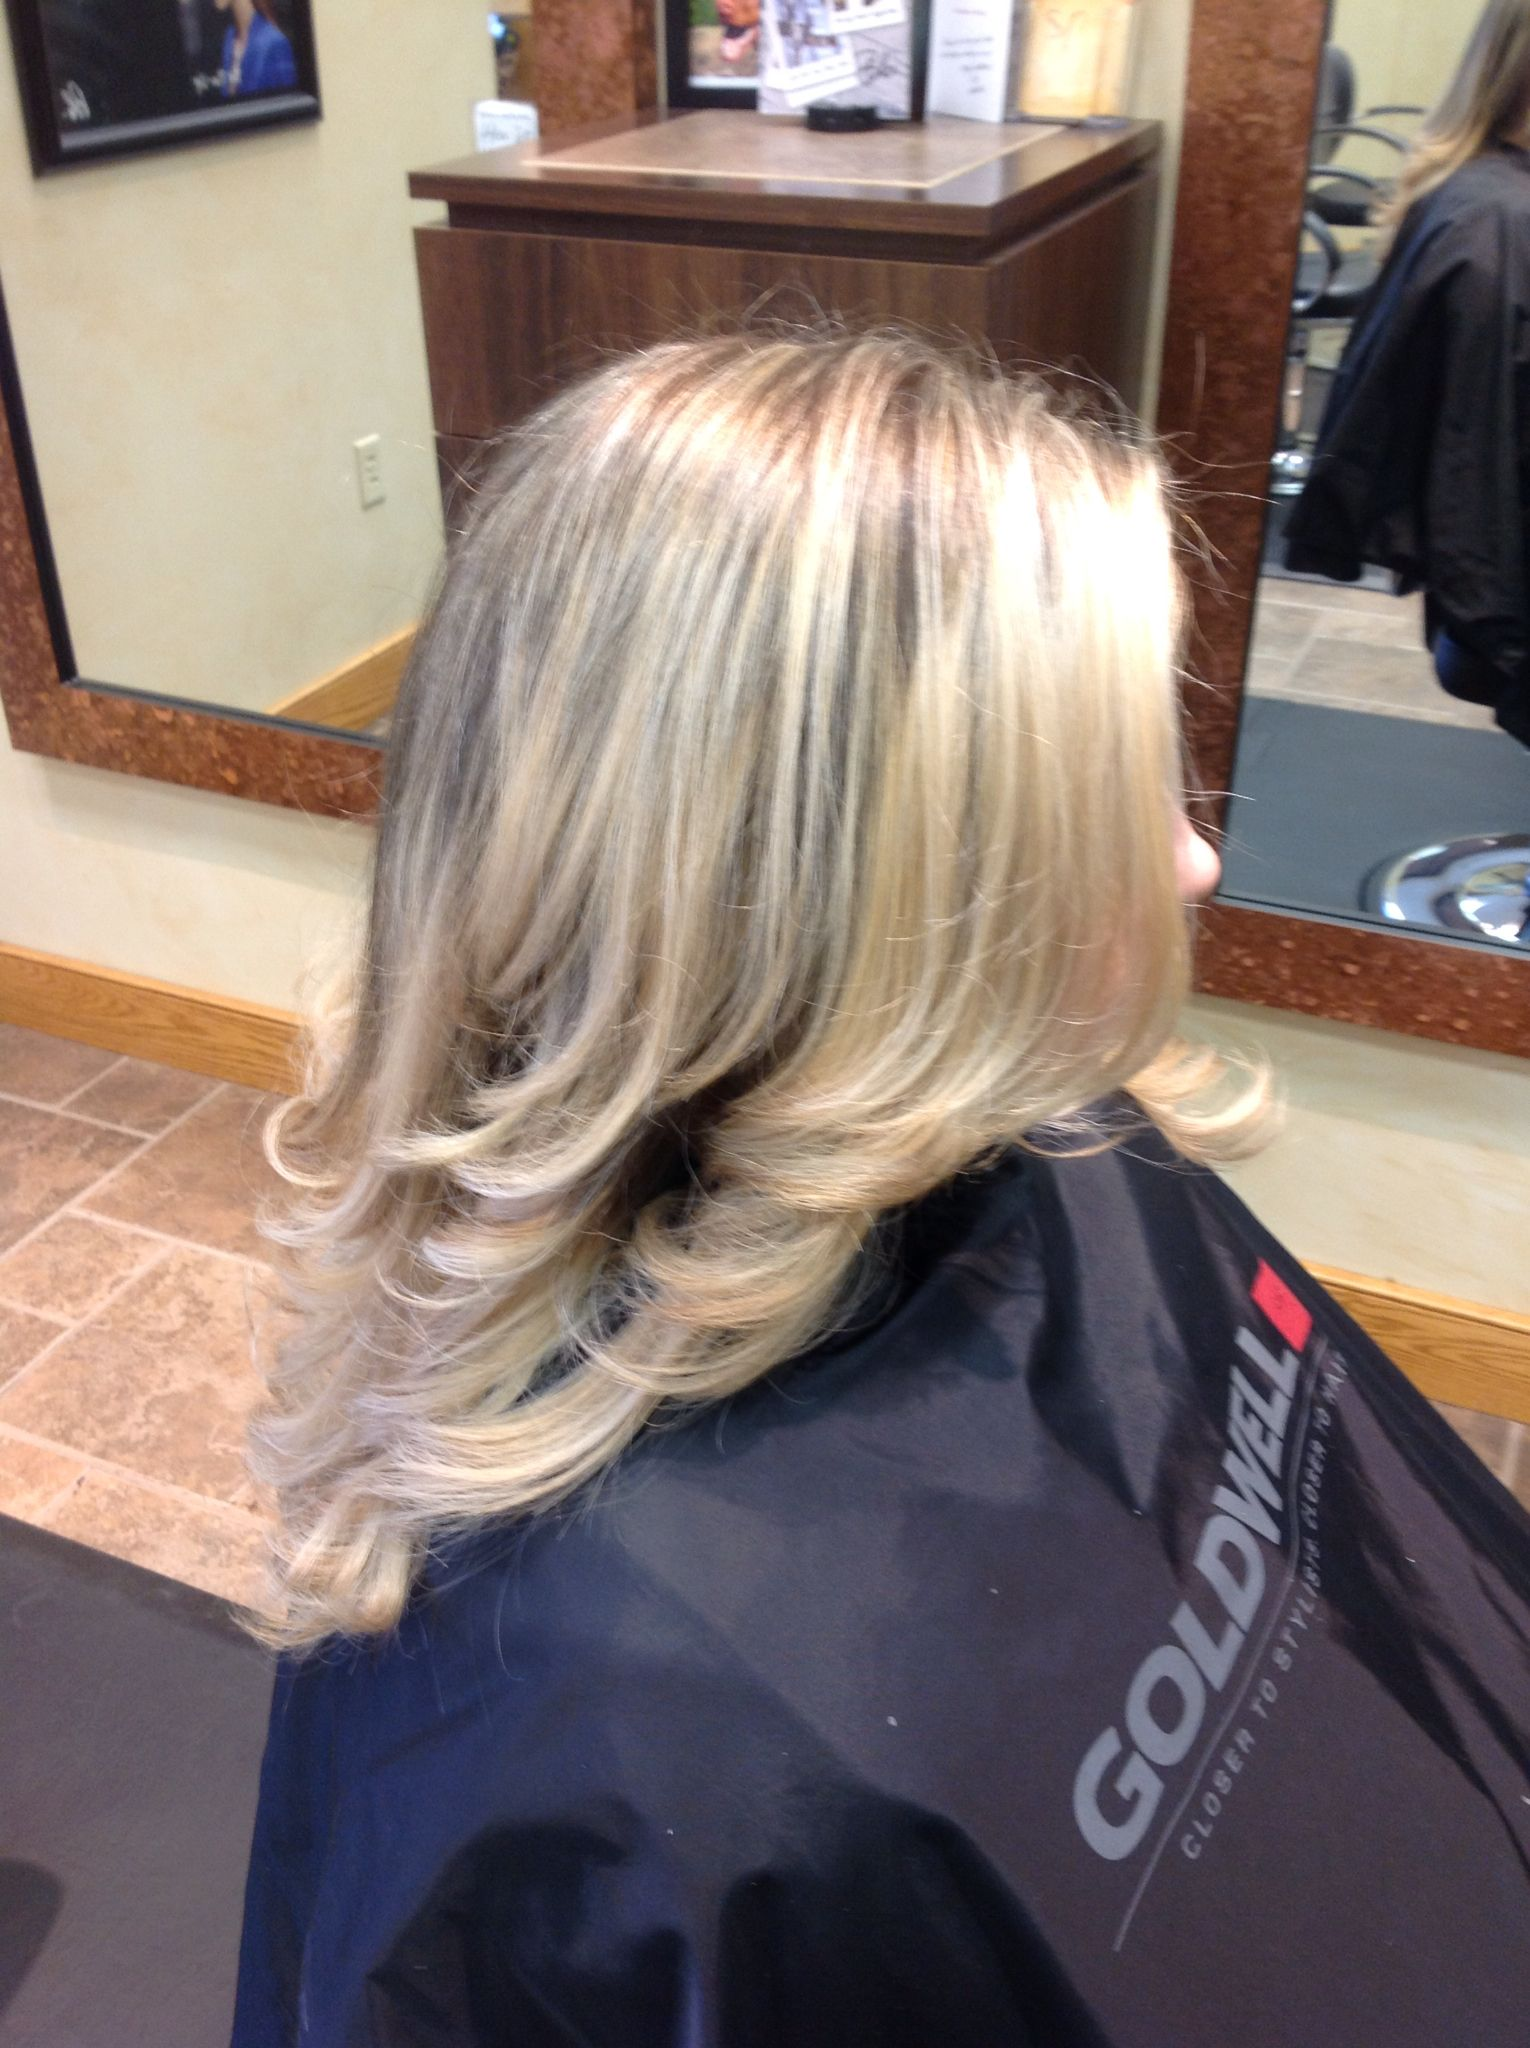 On her way to platinum blonde. Highlight by our stylist Emma